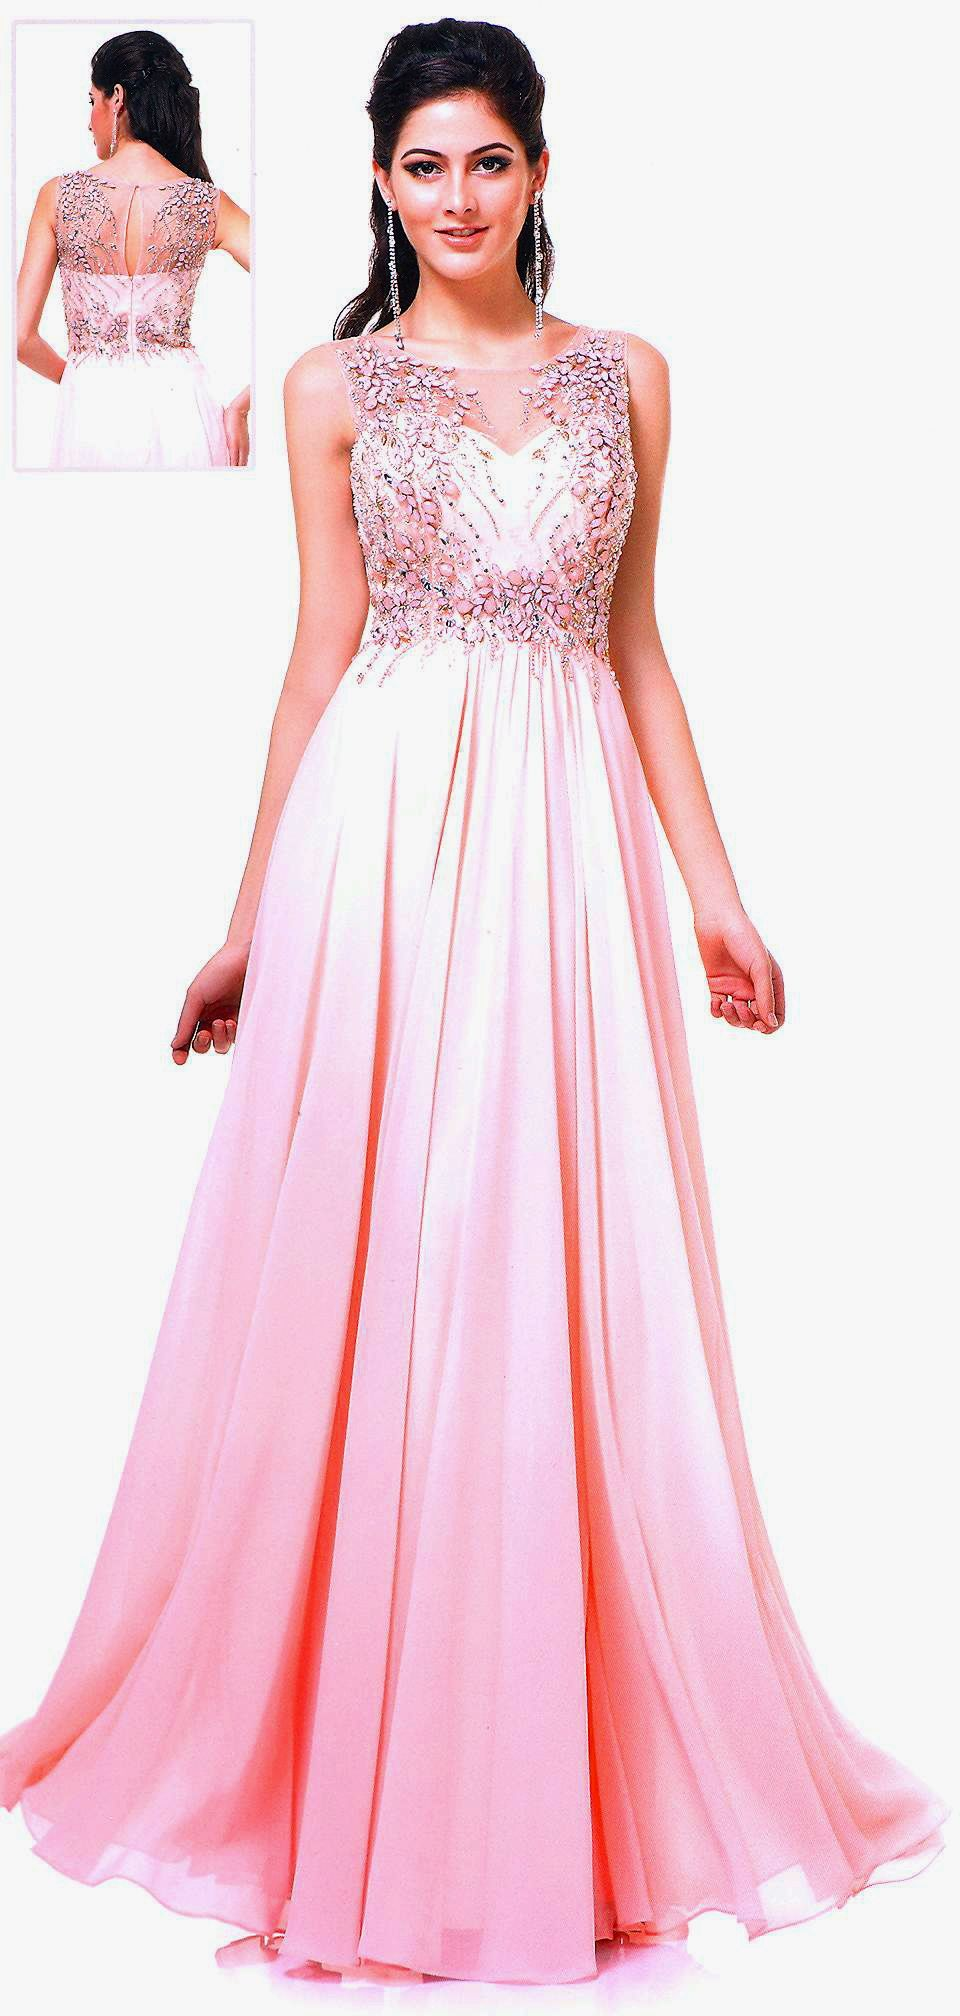 Prom dresses evening dresses ucbrueucbruesheer scoop neckline over